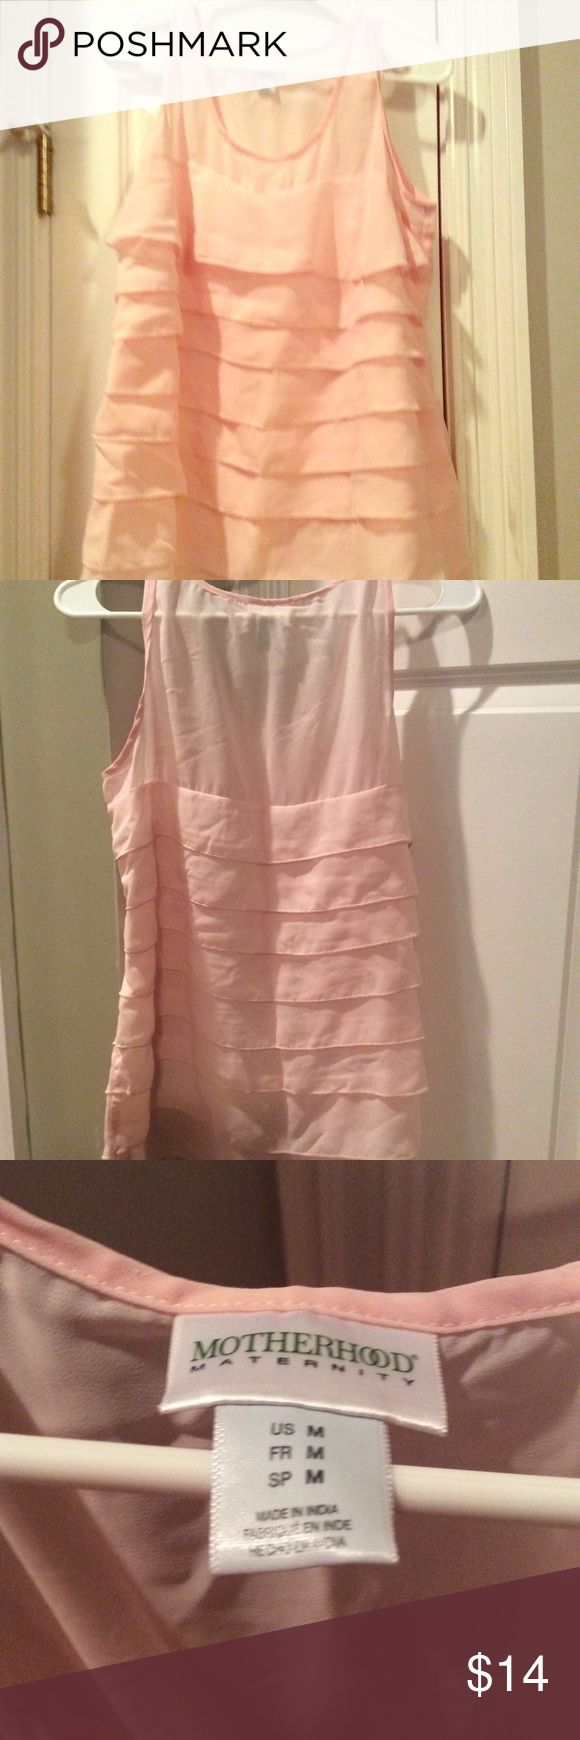 Motherhood Maternity multi layered sleeveless top Beautiful multi layered sleeveless top with sheer fabric on shoulders/upper chest area, great condition, worn for an office job with dress slacks, light baby pink color perfect for spring Motherhood Maternity Tops Blouses